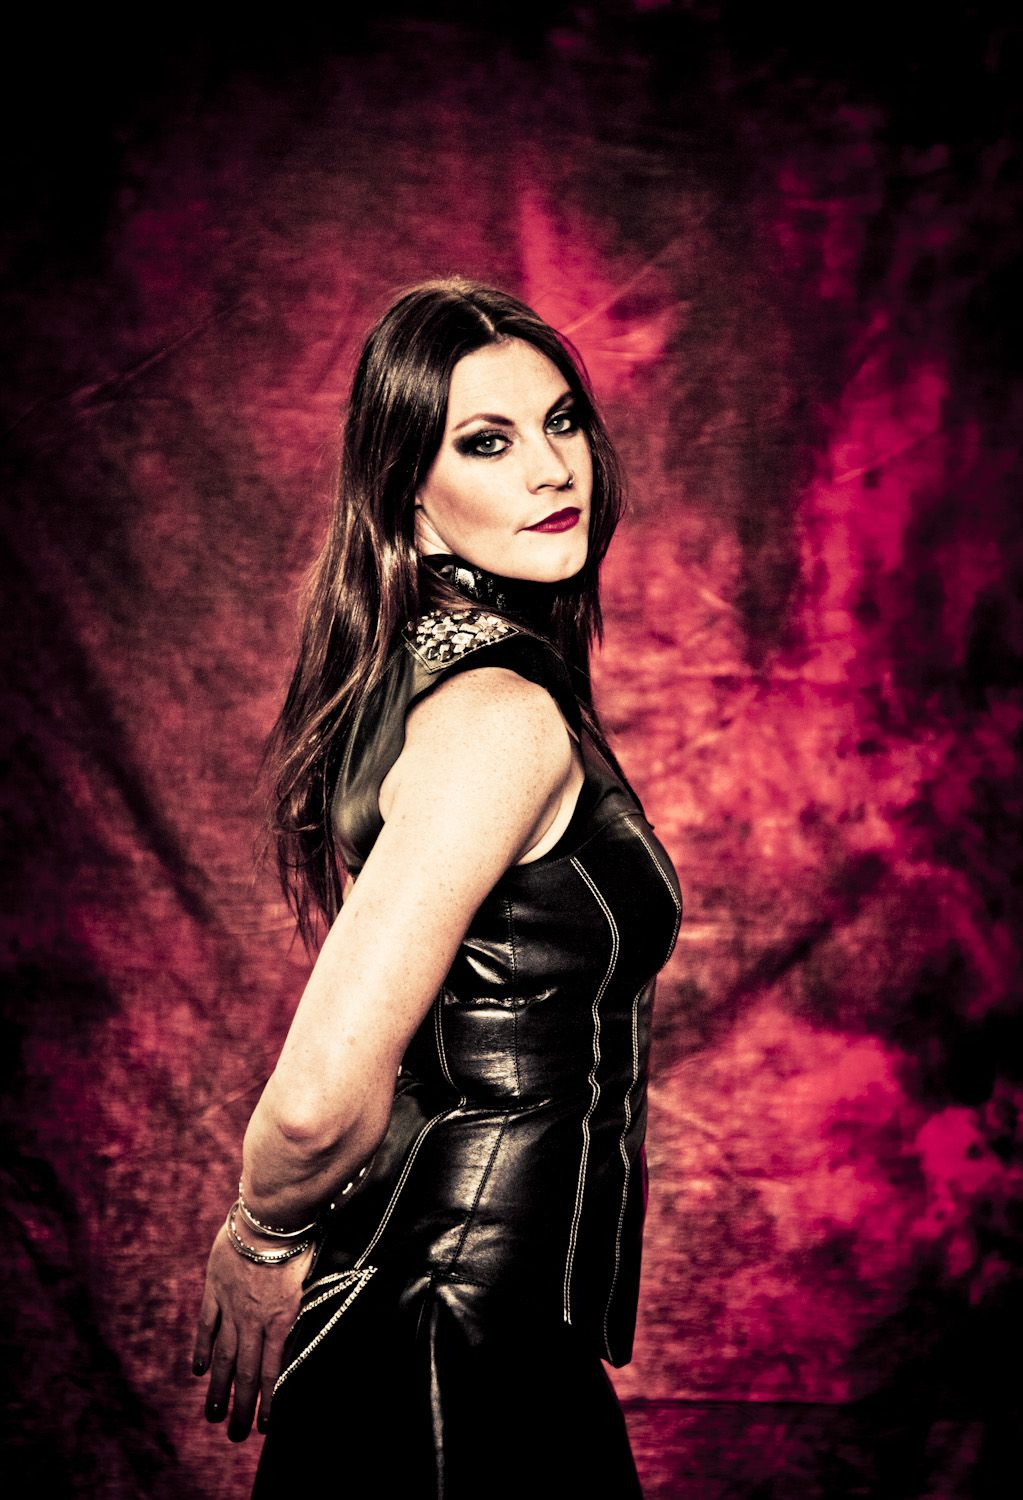 Floor Jansen One Of The Greatest Voices Out There Heavy Metal Girl Metal Girl Ladies Of Metal